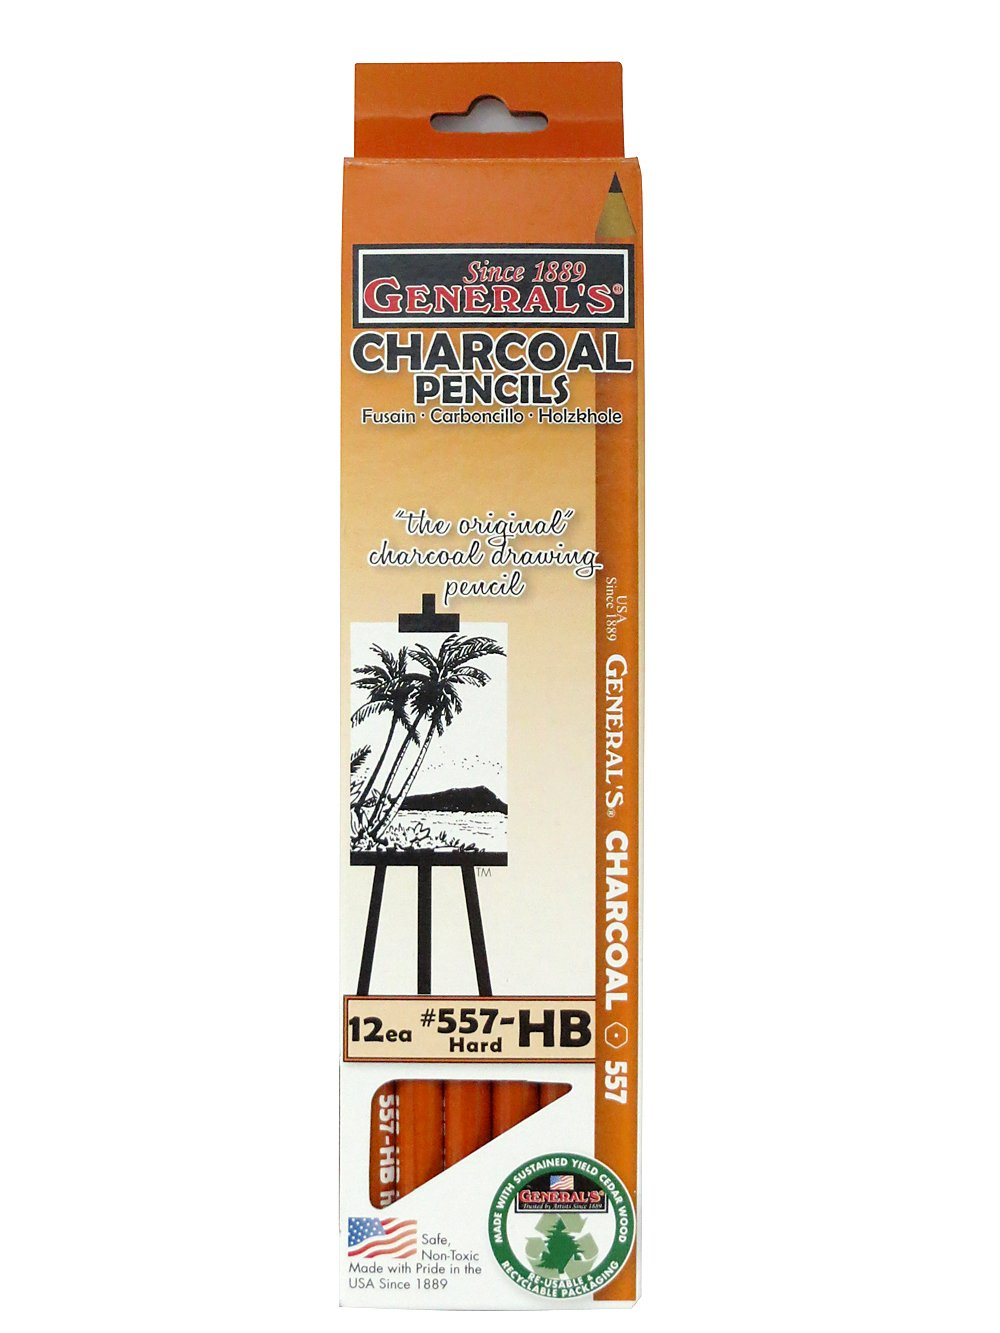 General Charcoal Pencil 557-Hb by GENERAL PENCIL CO INC